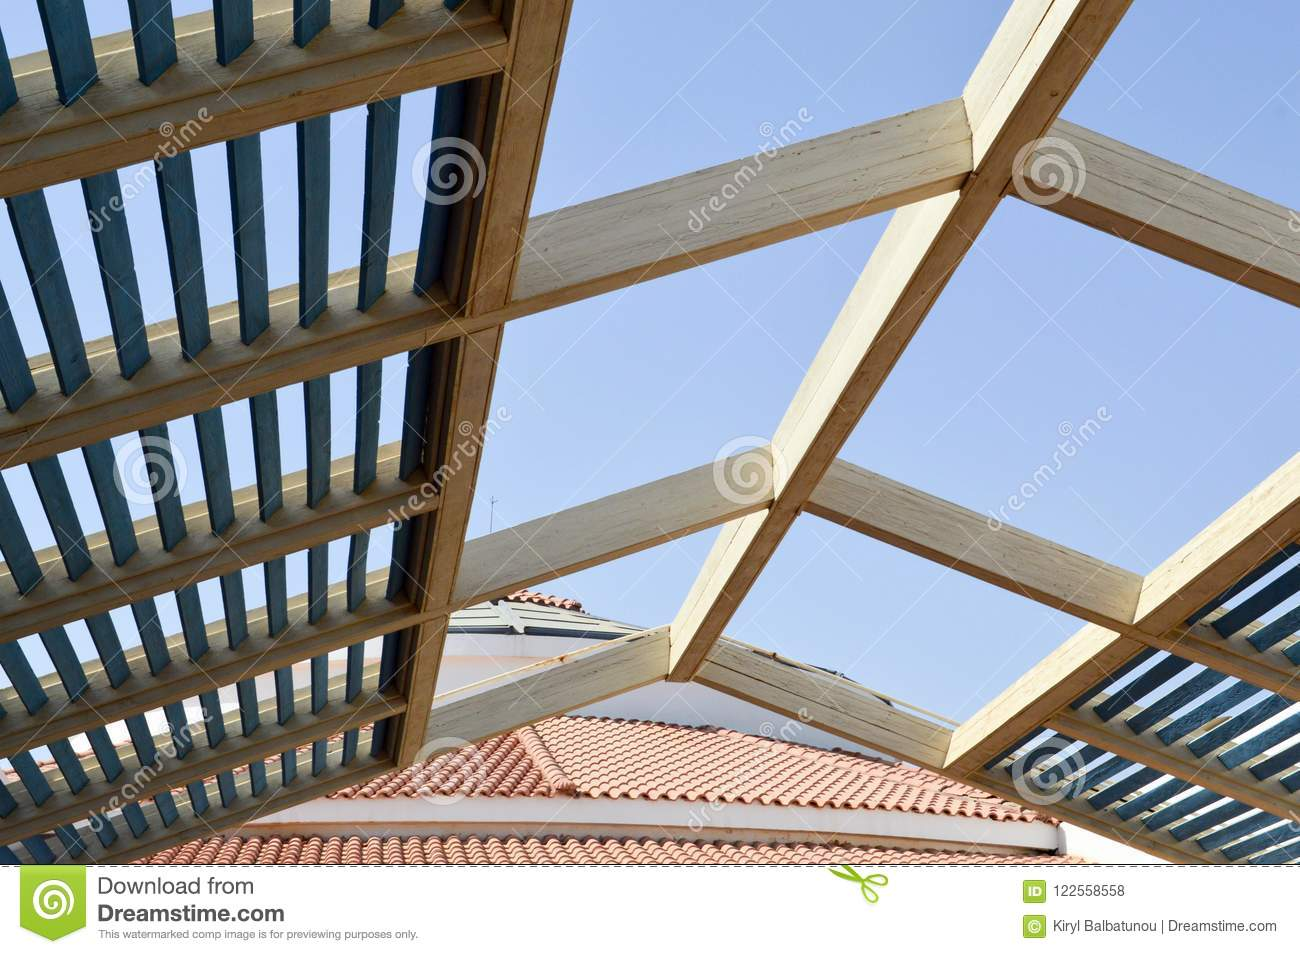 A Wooden Roof Is Modern From The Sun With Boards With Beams And